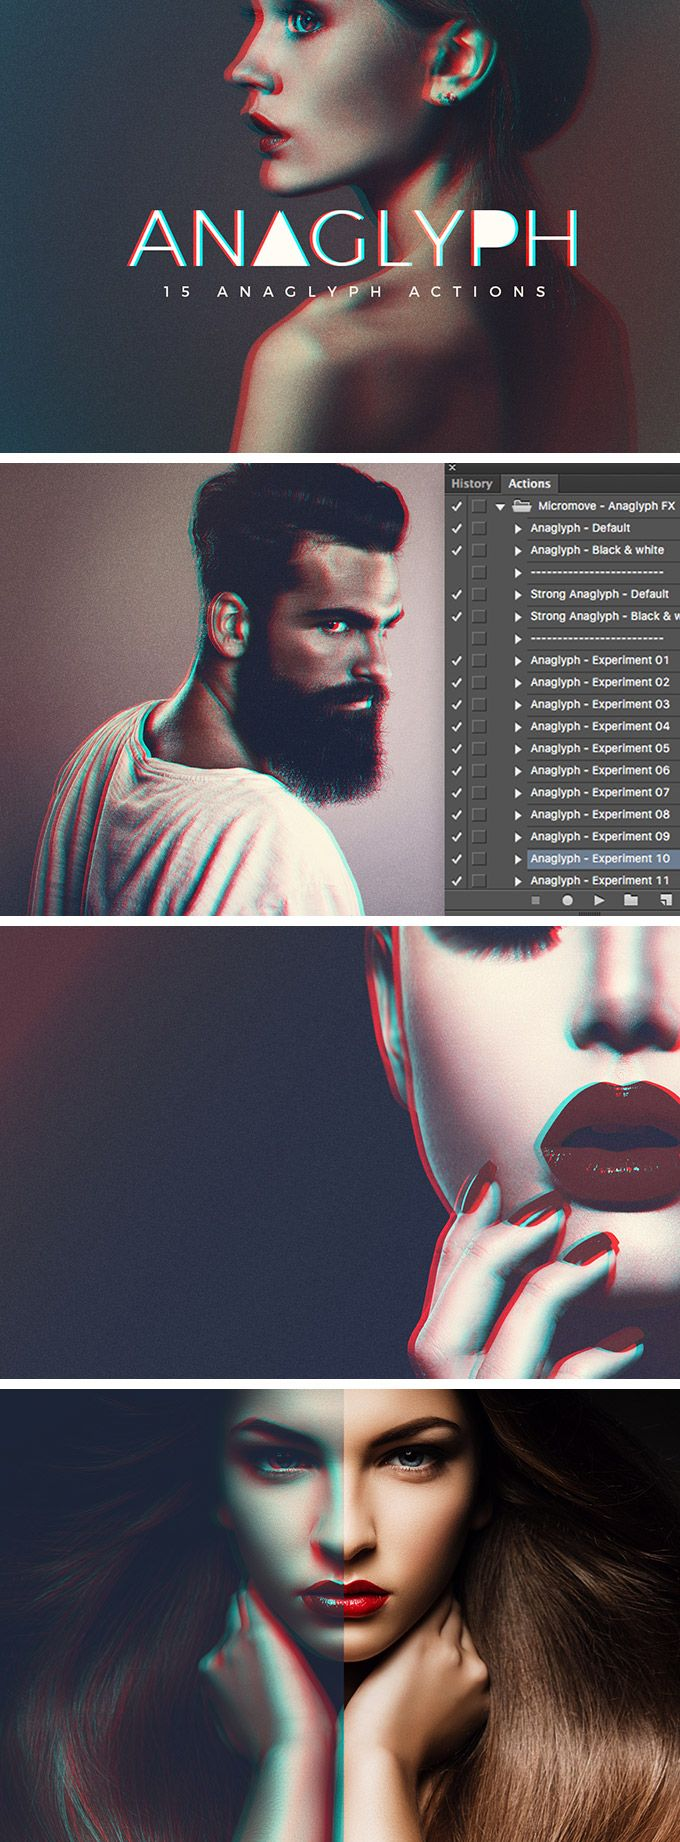 Download free anaglyph photo actions for Photoshop